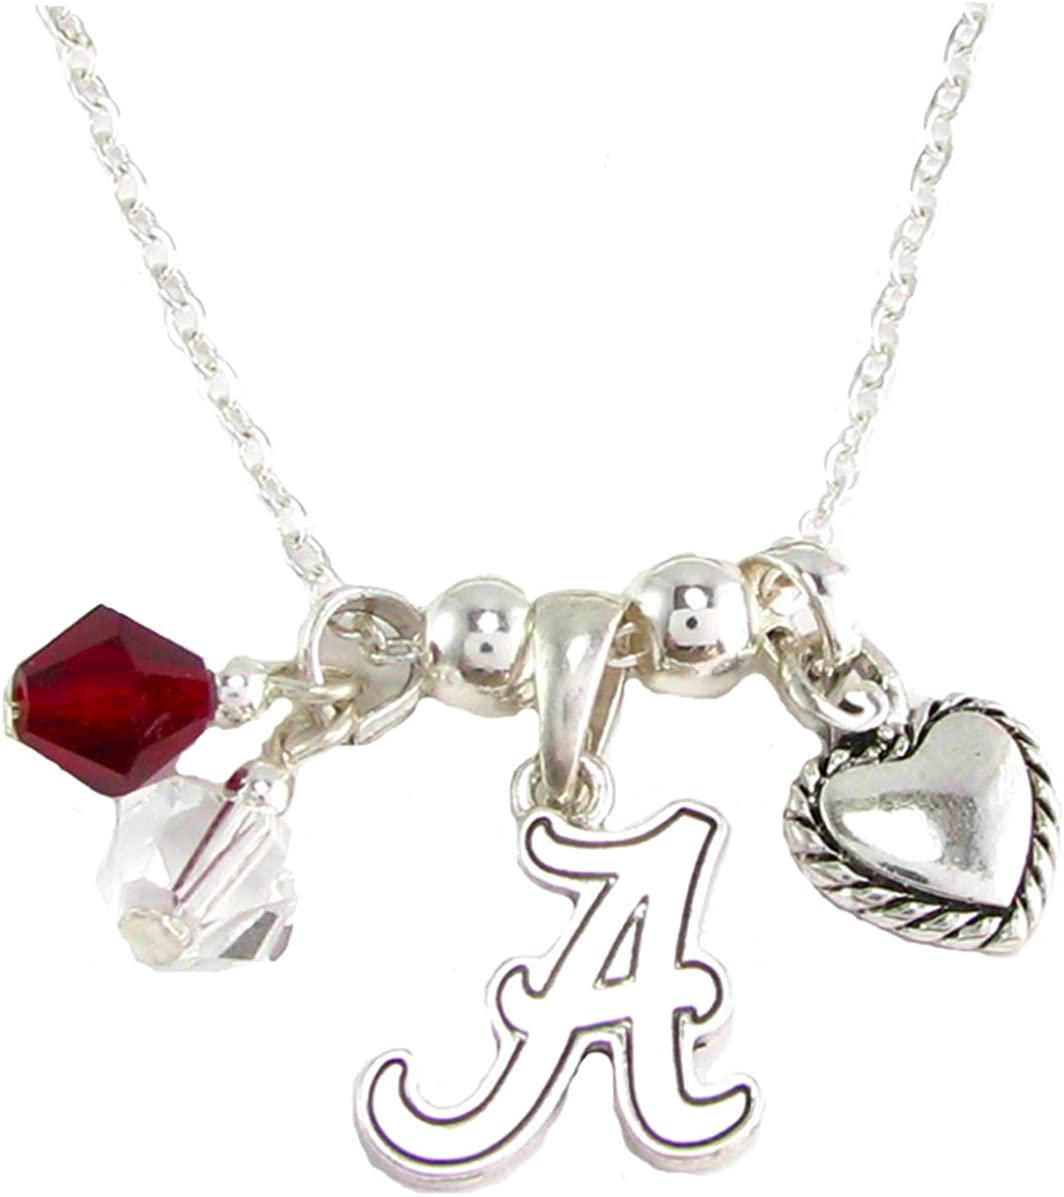 Louisville Cardinals Red Black Austrian Crystal Heart Silver Chain Necklace UL by Sports Accessory Store